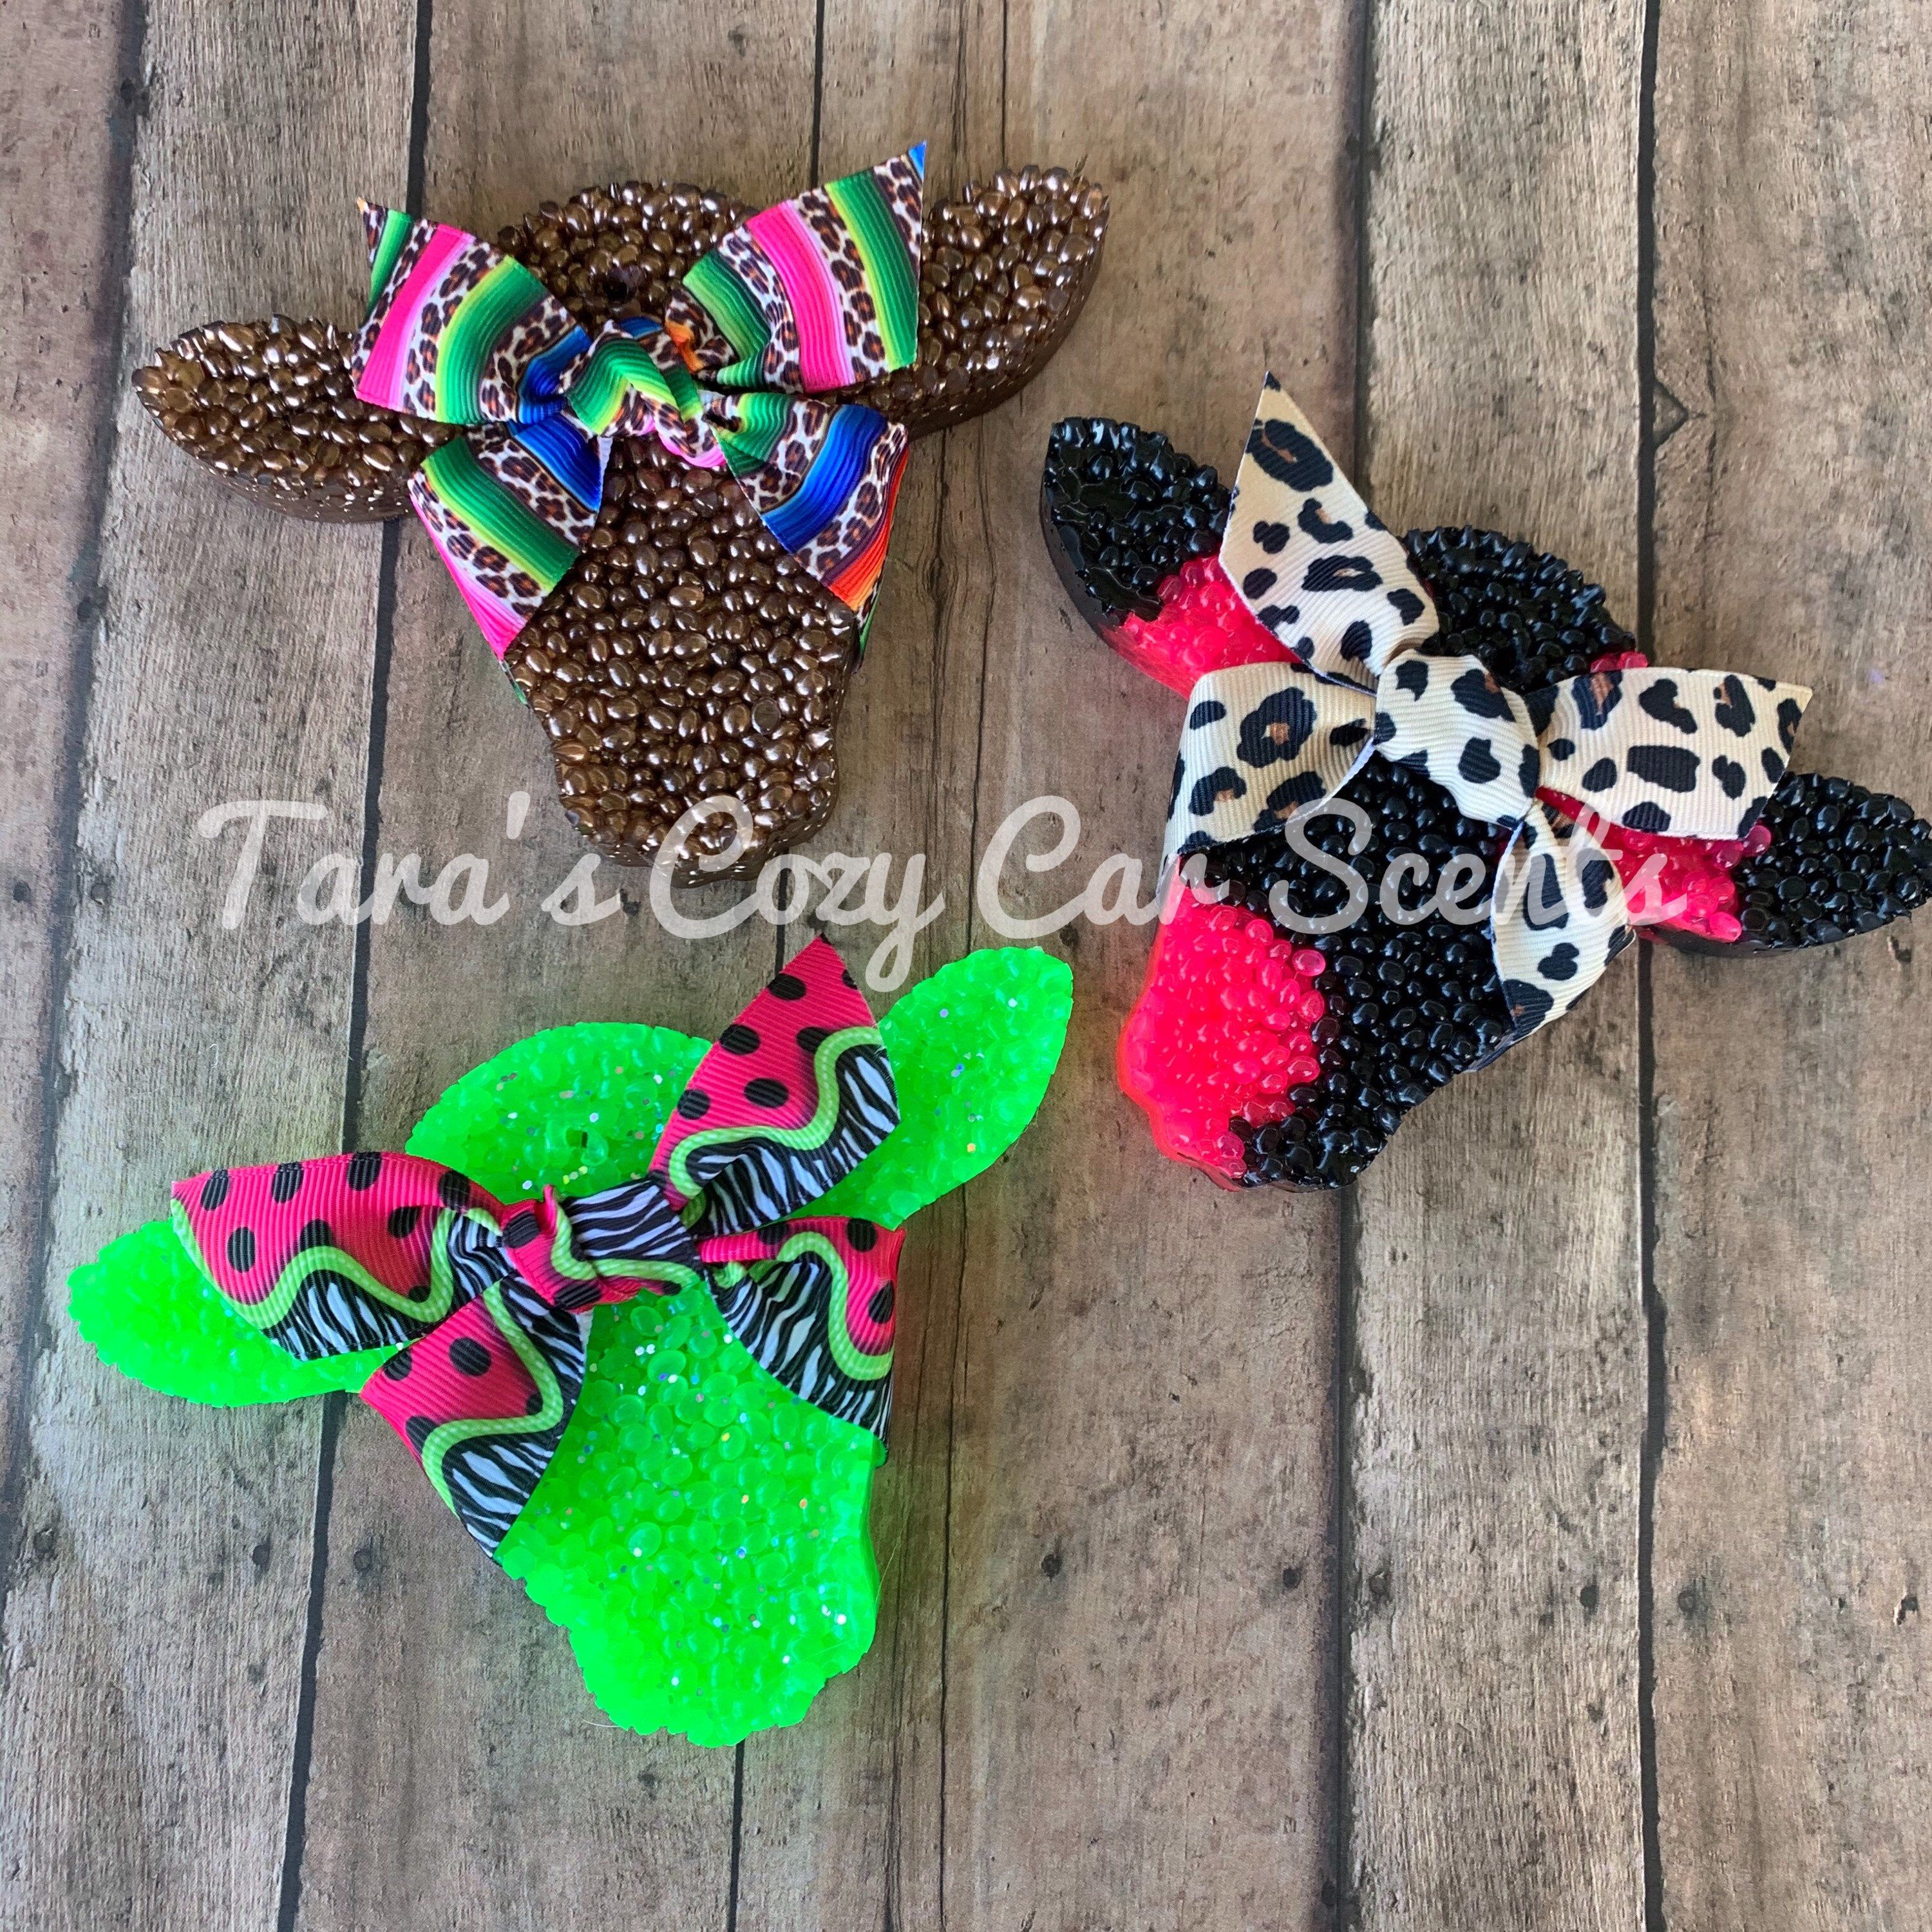 Cow Head w/Acrylic Ear Tag •Freshie• {Choose your Scent